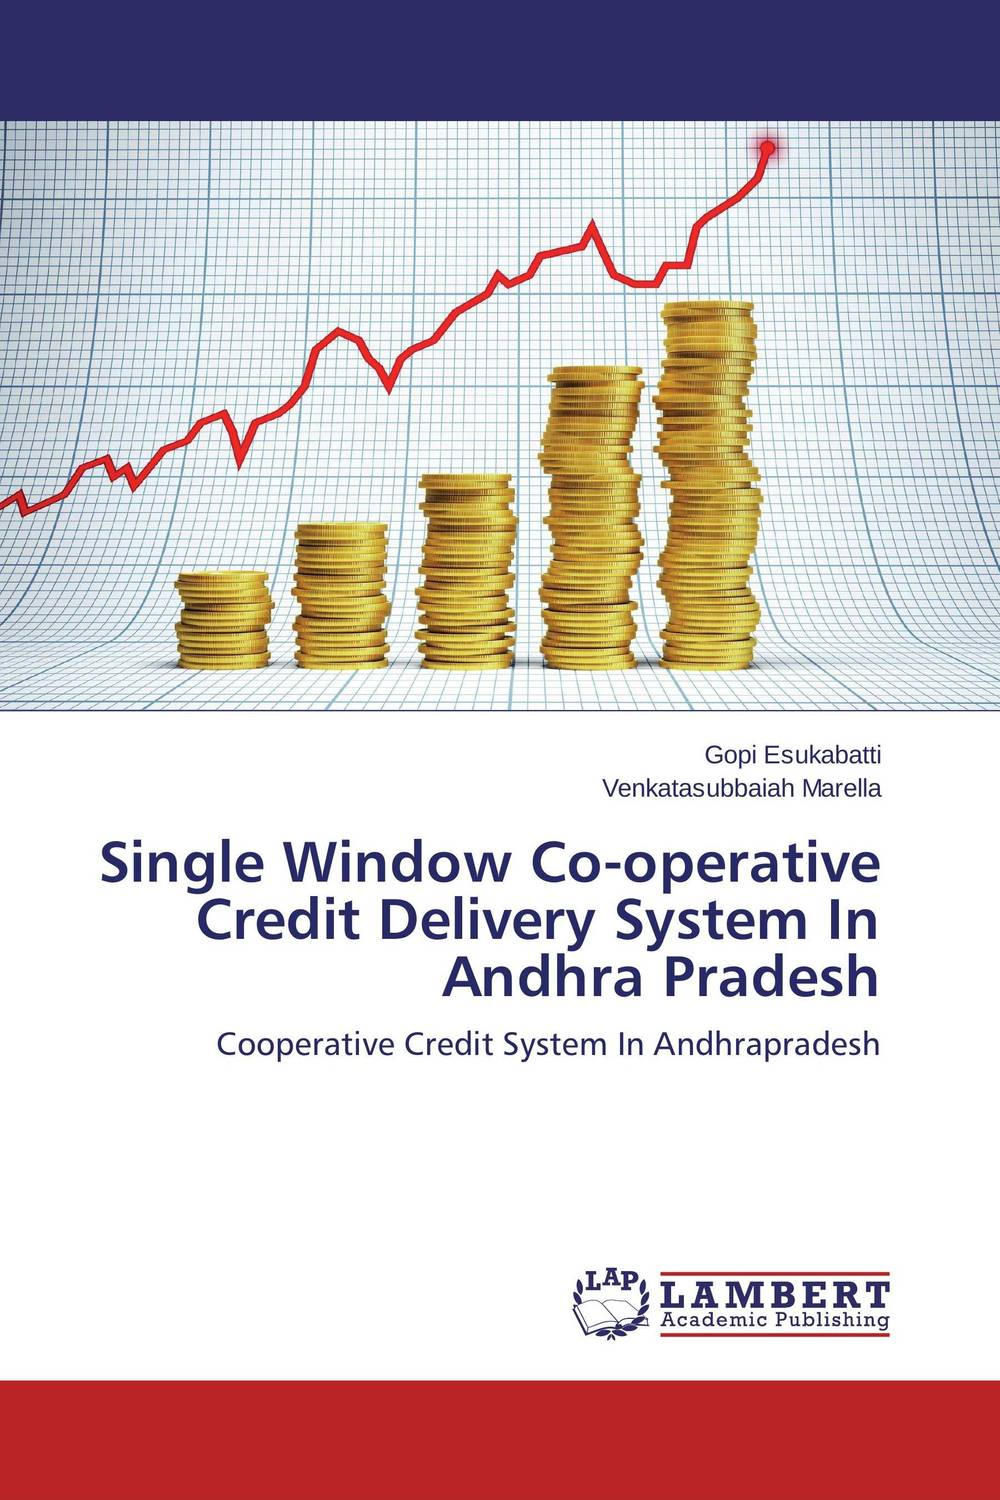 Single Window Co-operative Credit Delivery System In Andhra Pradesh